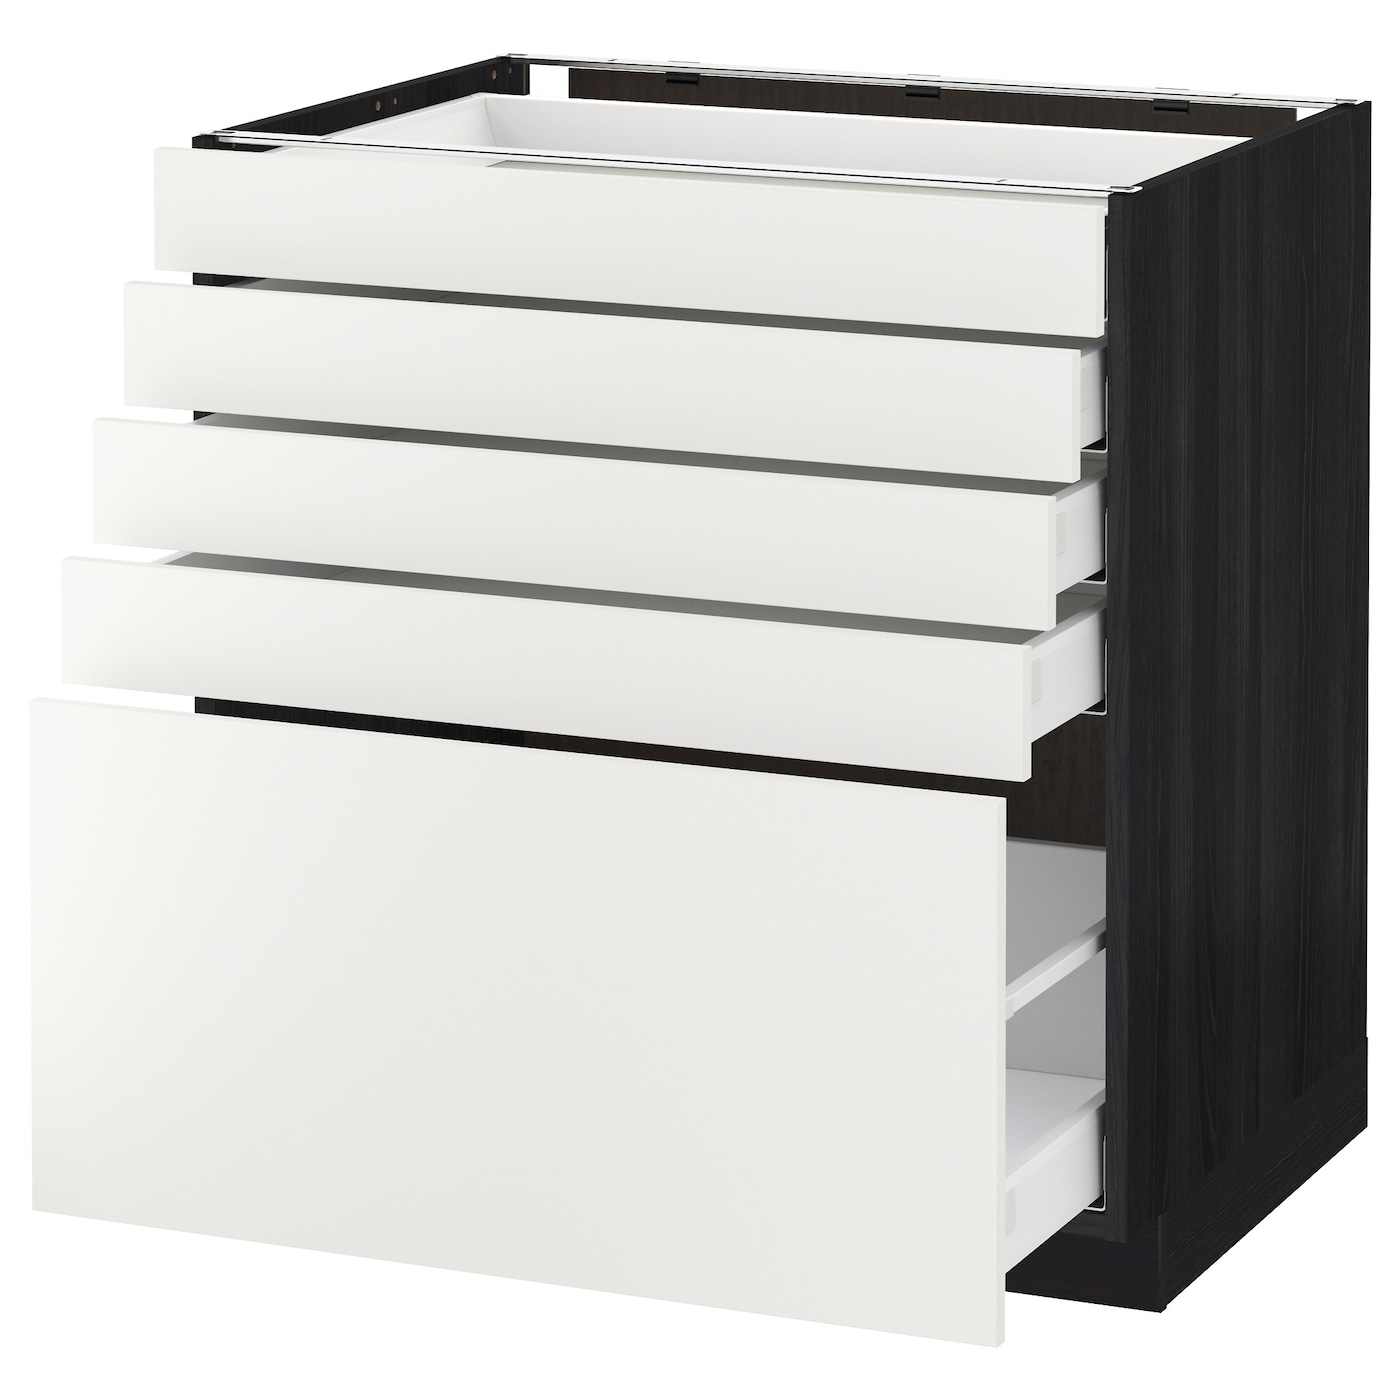 IKEA METOD/MAXIMERA base cabinet with 5 drawers Smooth-running drawers with stop.